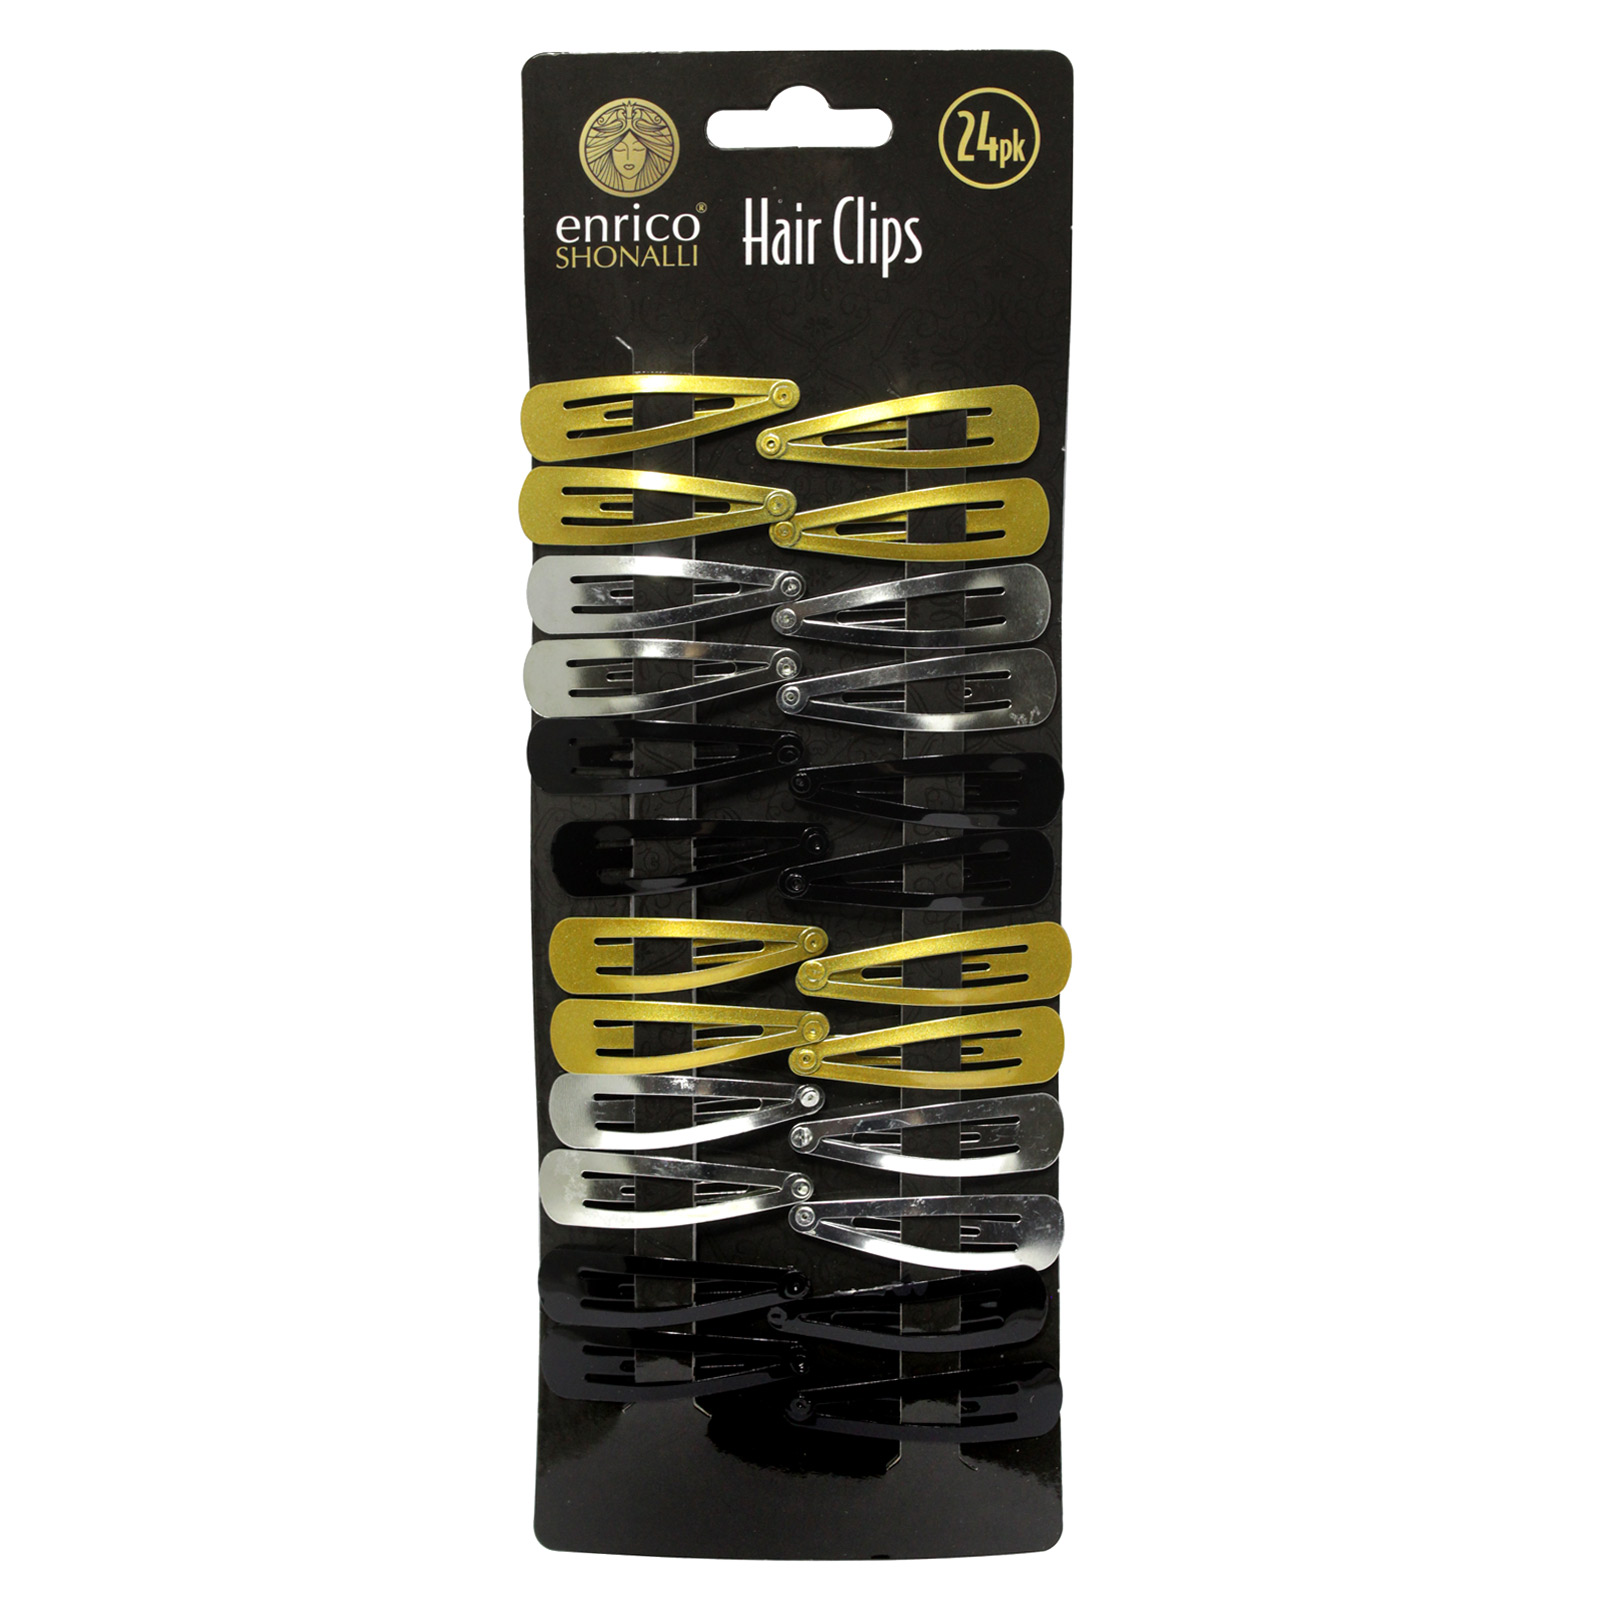 ENRICO HAIR SLIDES 24PK BLK/GOLD/SILVER